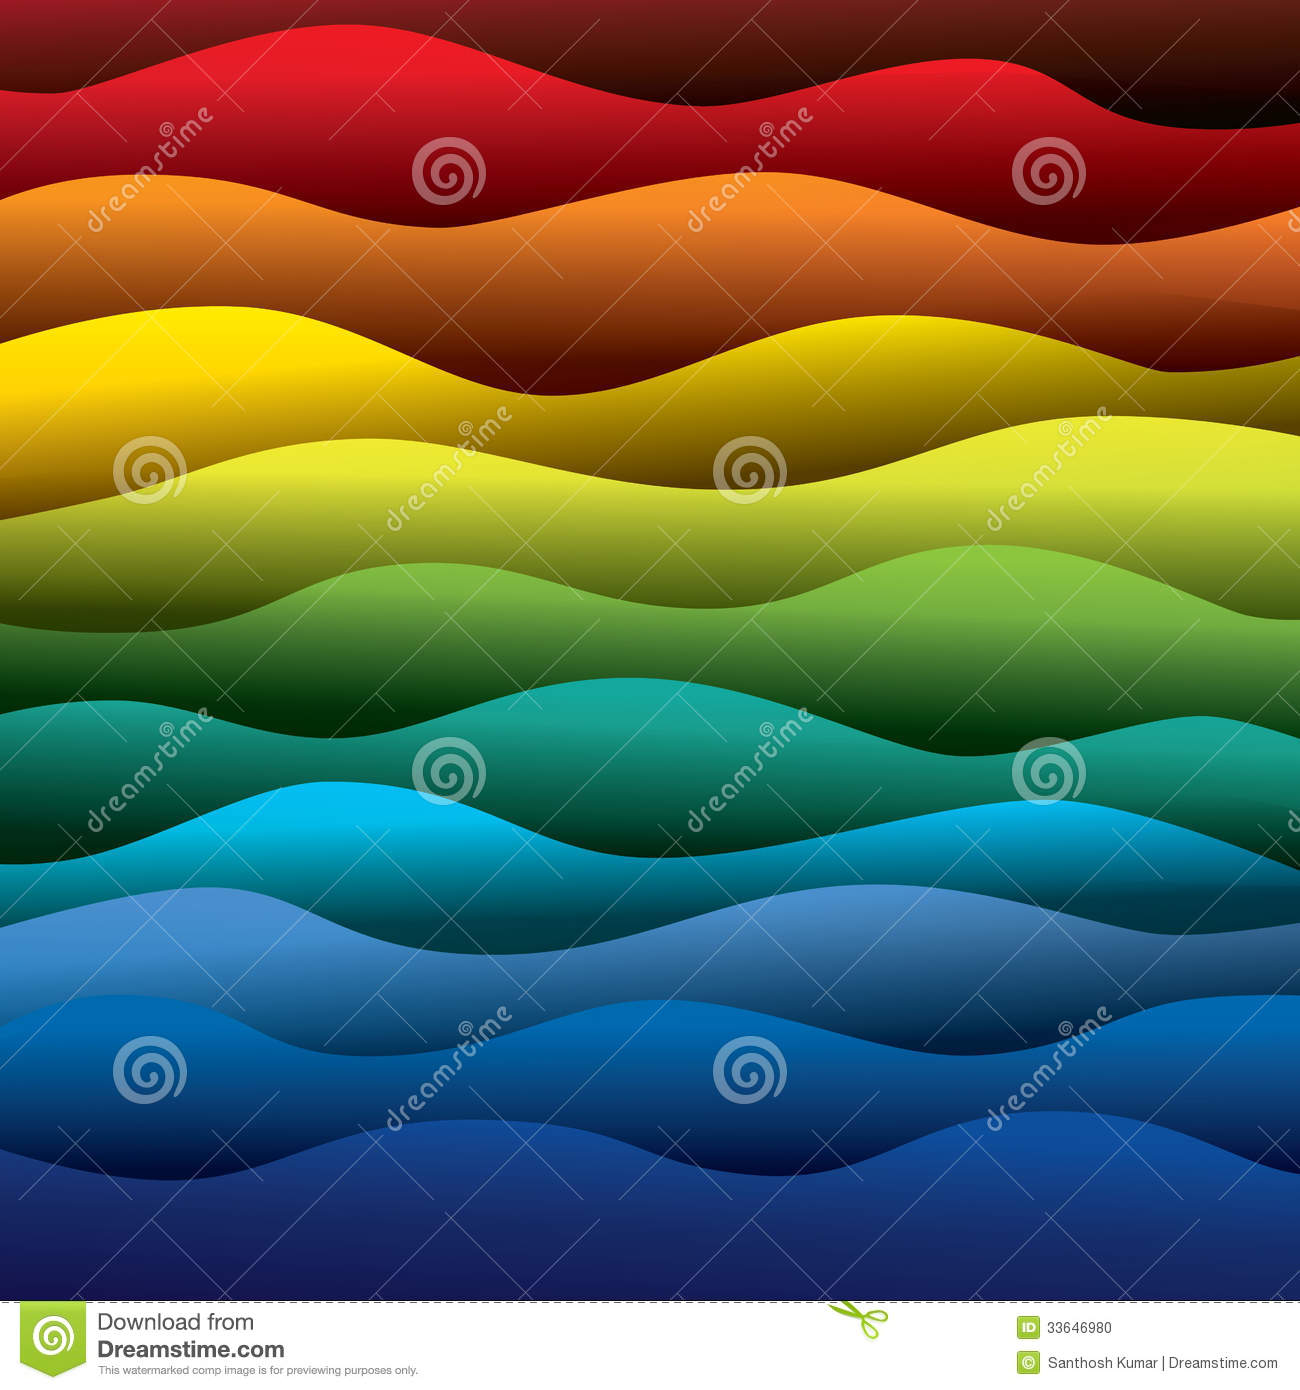 Abstract colorful water waves of ocean or sea background